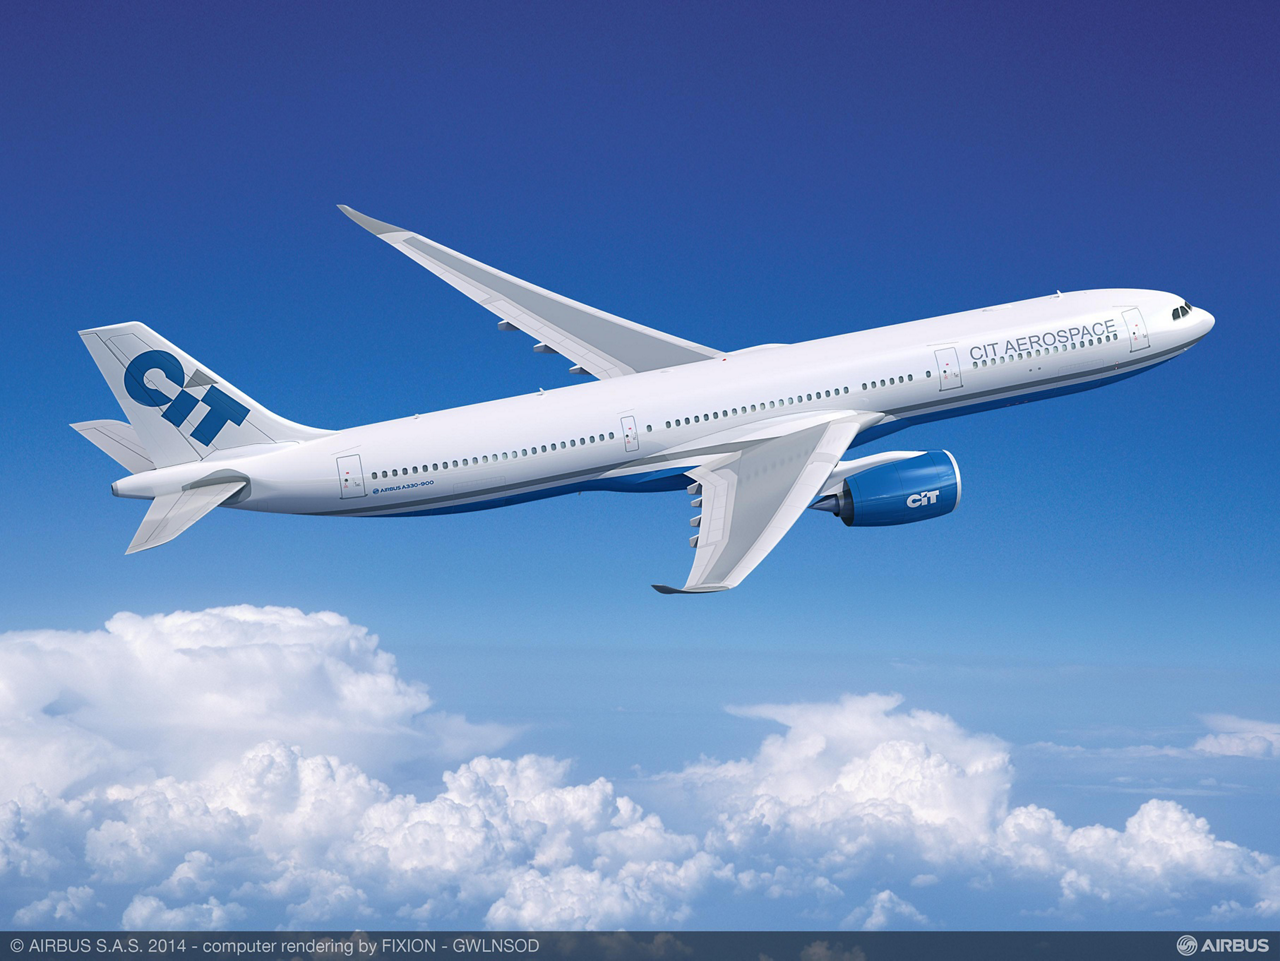 CIT Group Inc., which became one of the A330neo launch customers with signing of an initial agreement at the 2014 Farnborough International Airshow, has firmed up its order for 15 A330-900neo jetliners, plus five A321ceo aircraft -